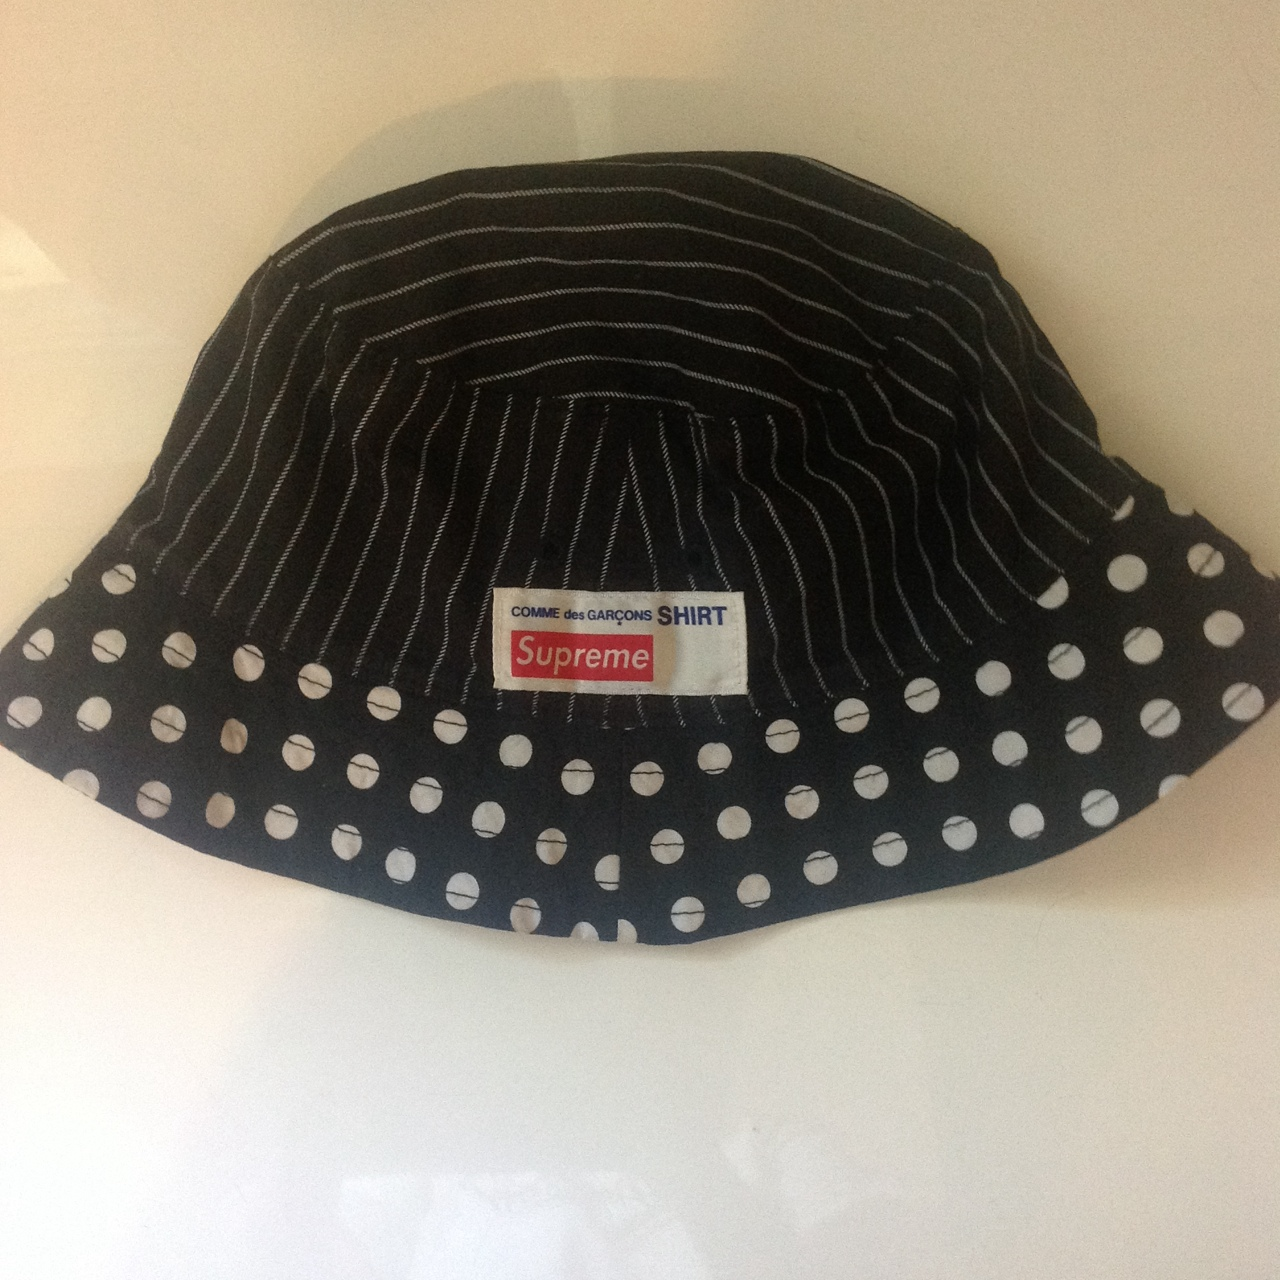 581d11b5a61 Supreme x comme des garcons bucket hat size s   m black dot. - Depop